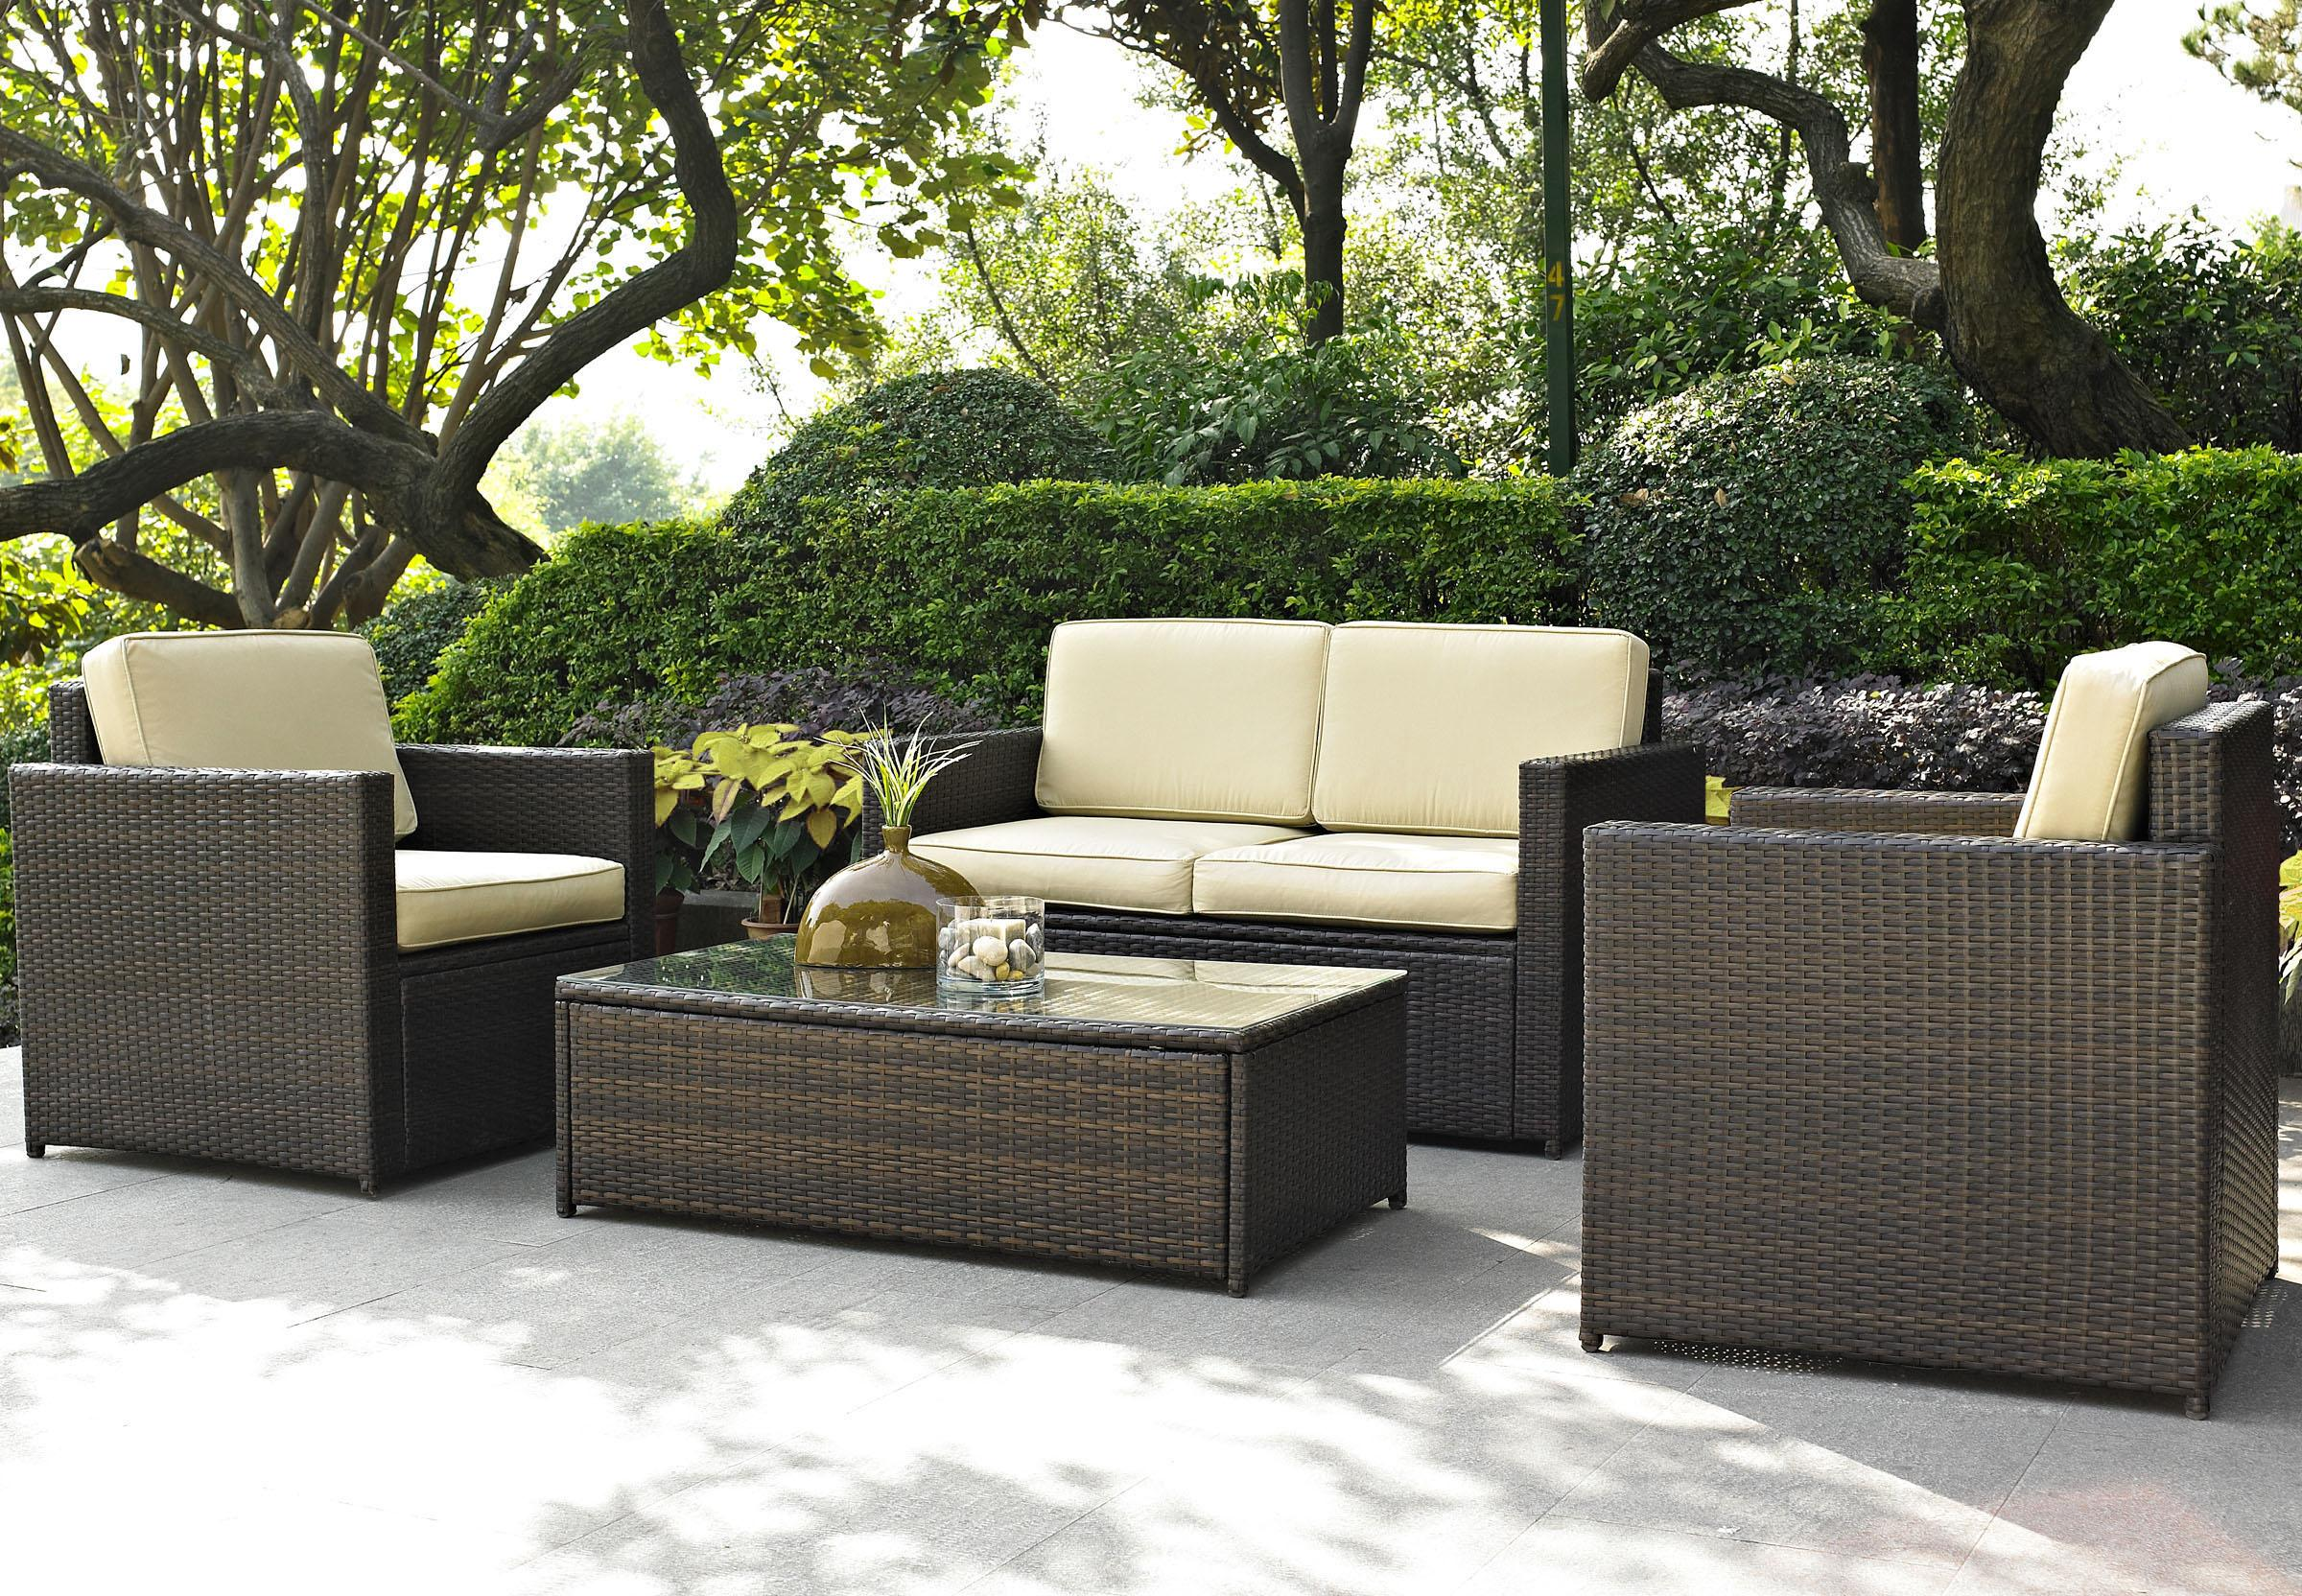 outdoor furniture online